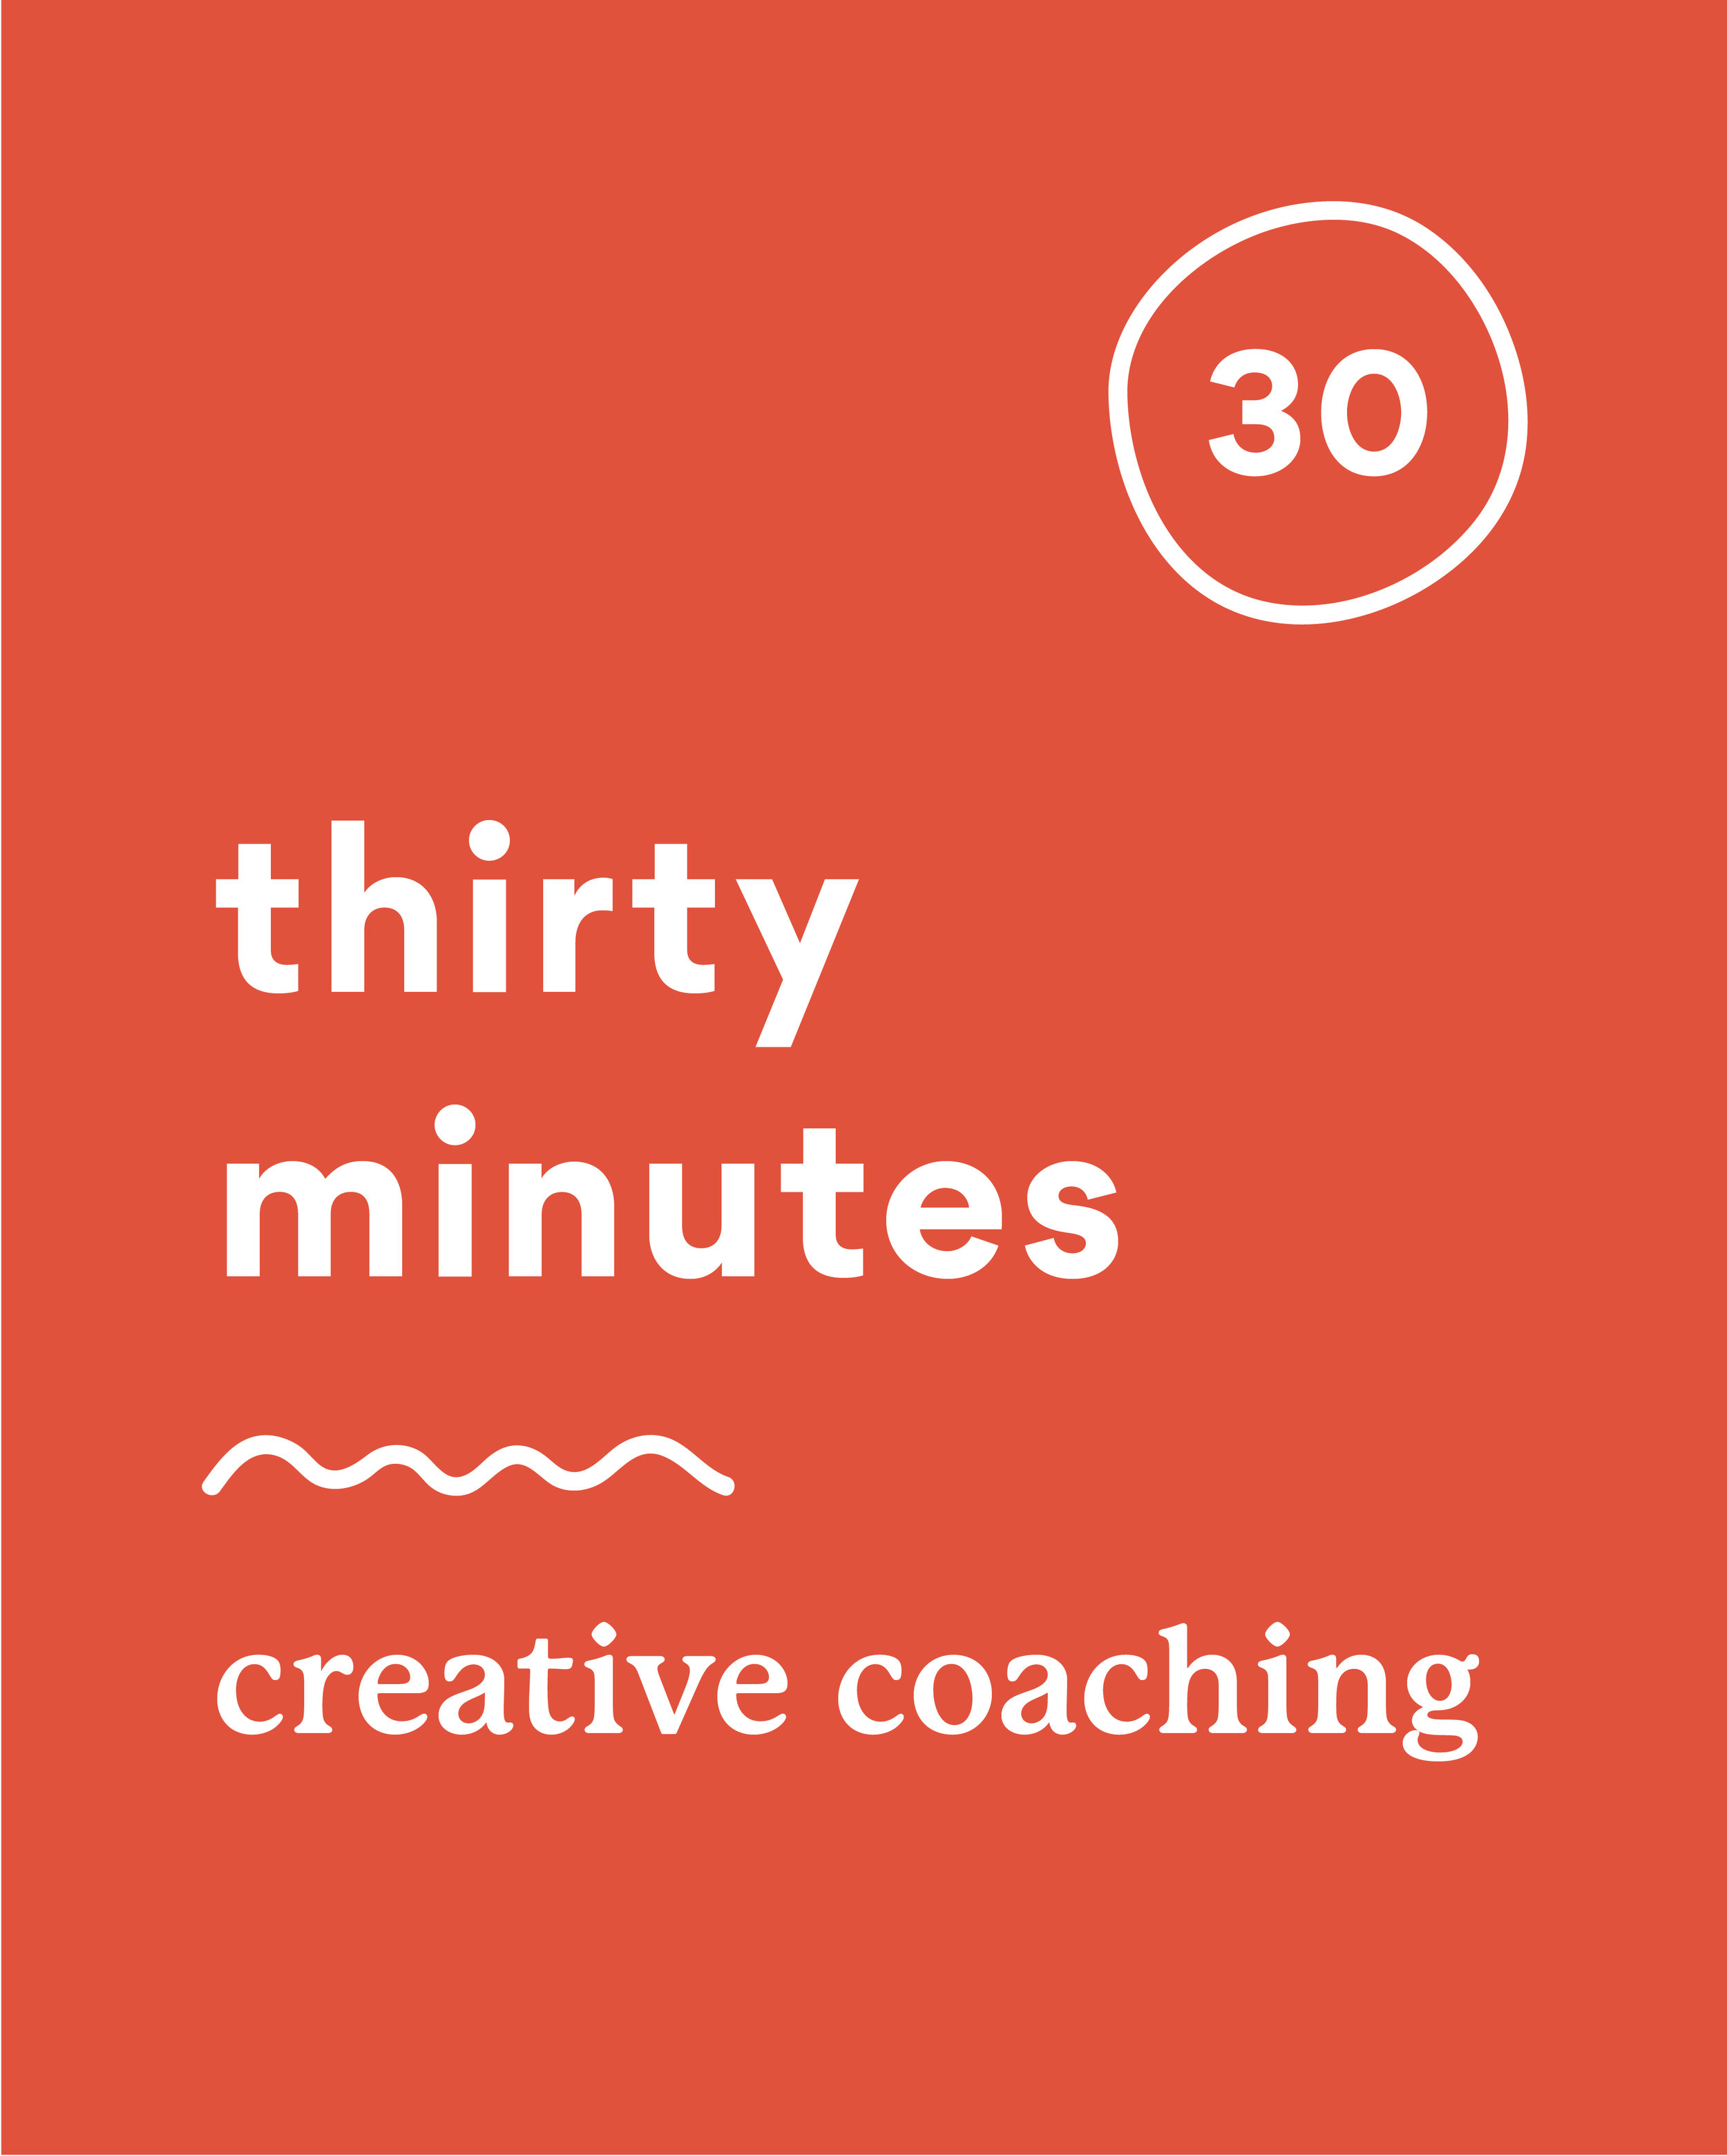 Creative_Coaching_Consulting_Phone_Call